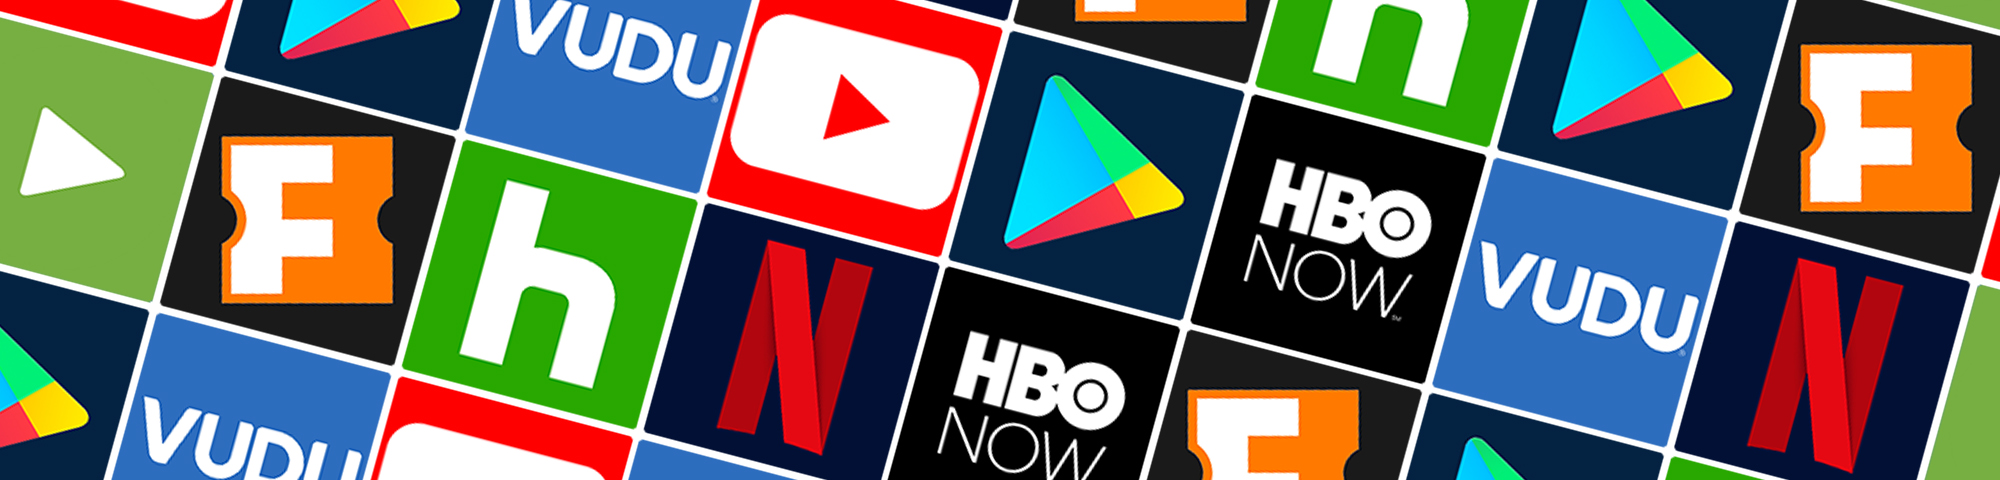 Best Movie and TV Streaming Sites 2019 - Hulu, HBO, Netflix